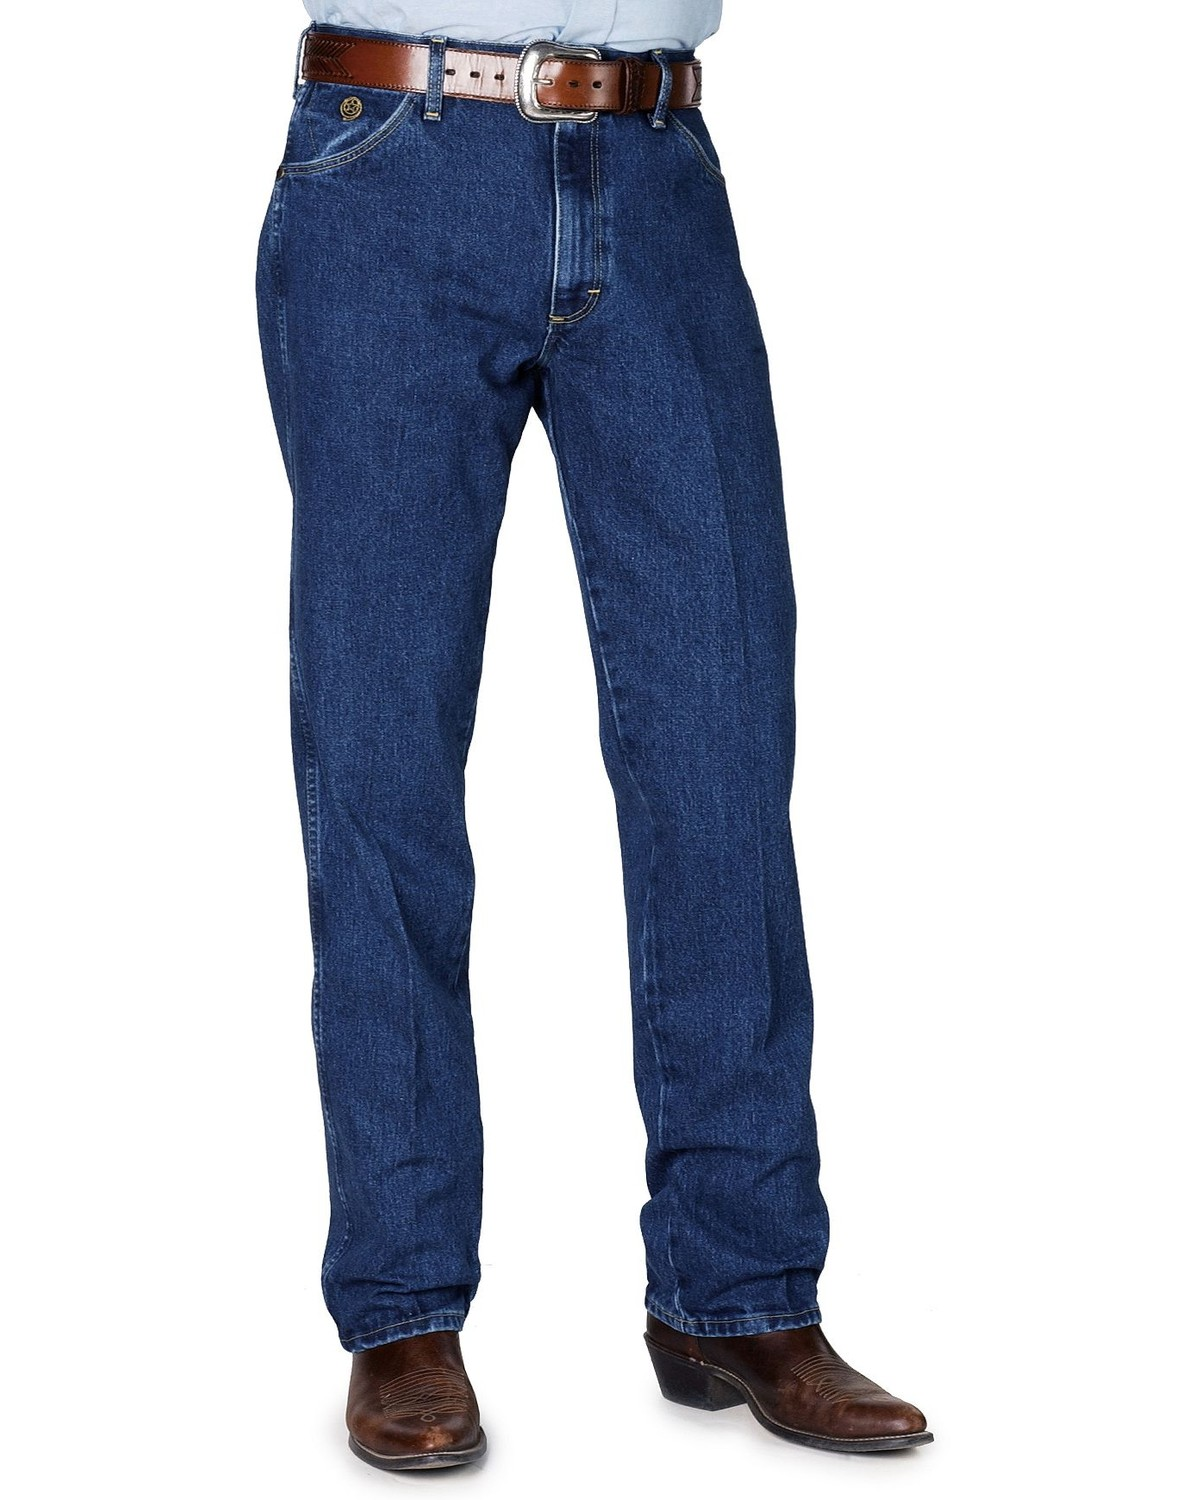 0c93d73a Wrangler Jeans - 31MWZ George Strait Relaxed Fit, Denim, hi-res